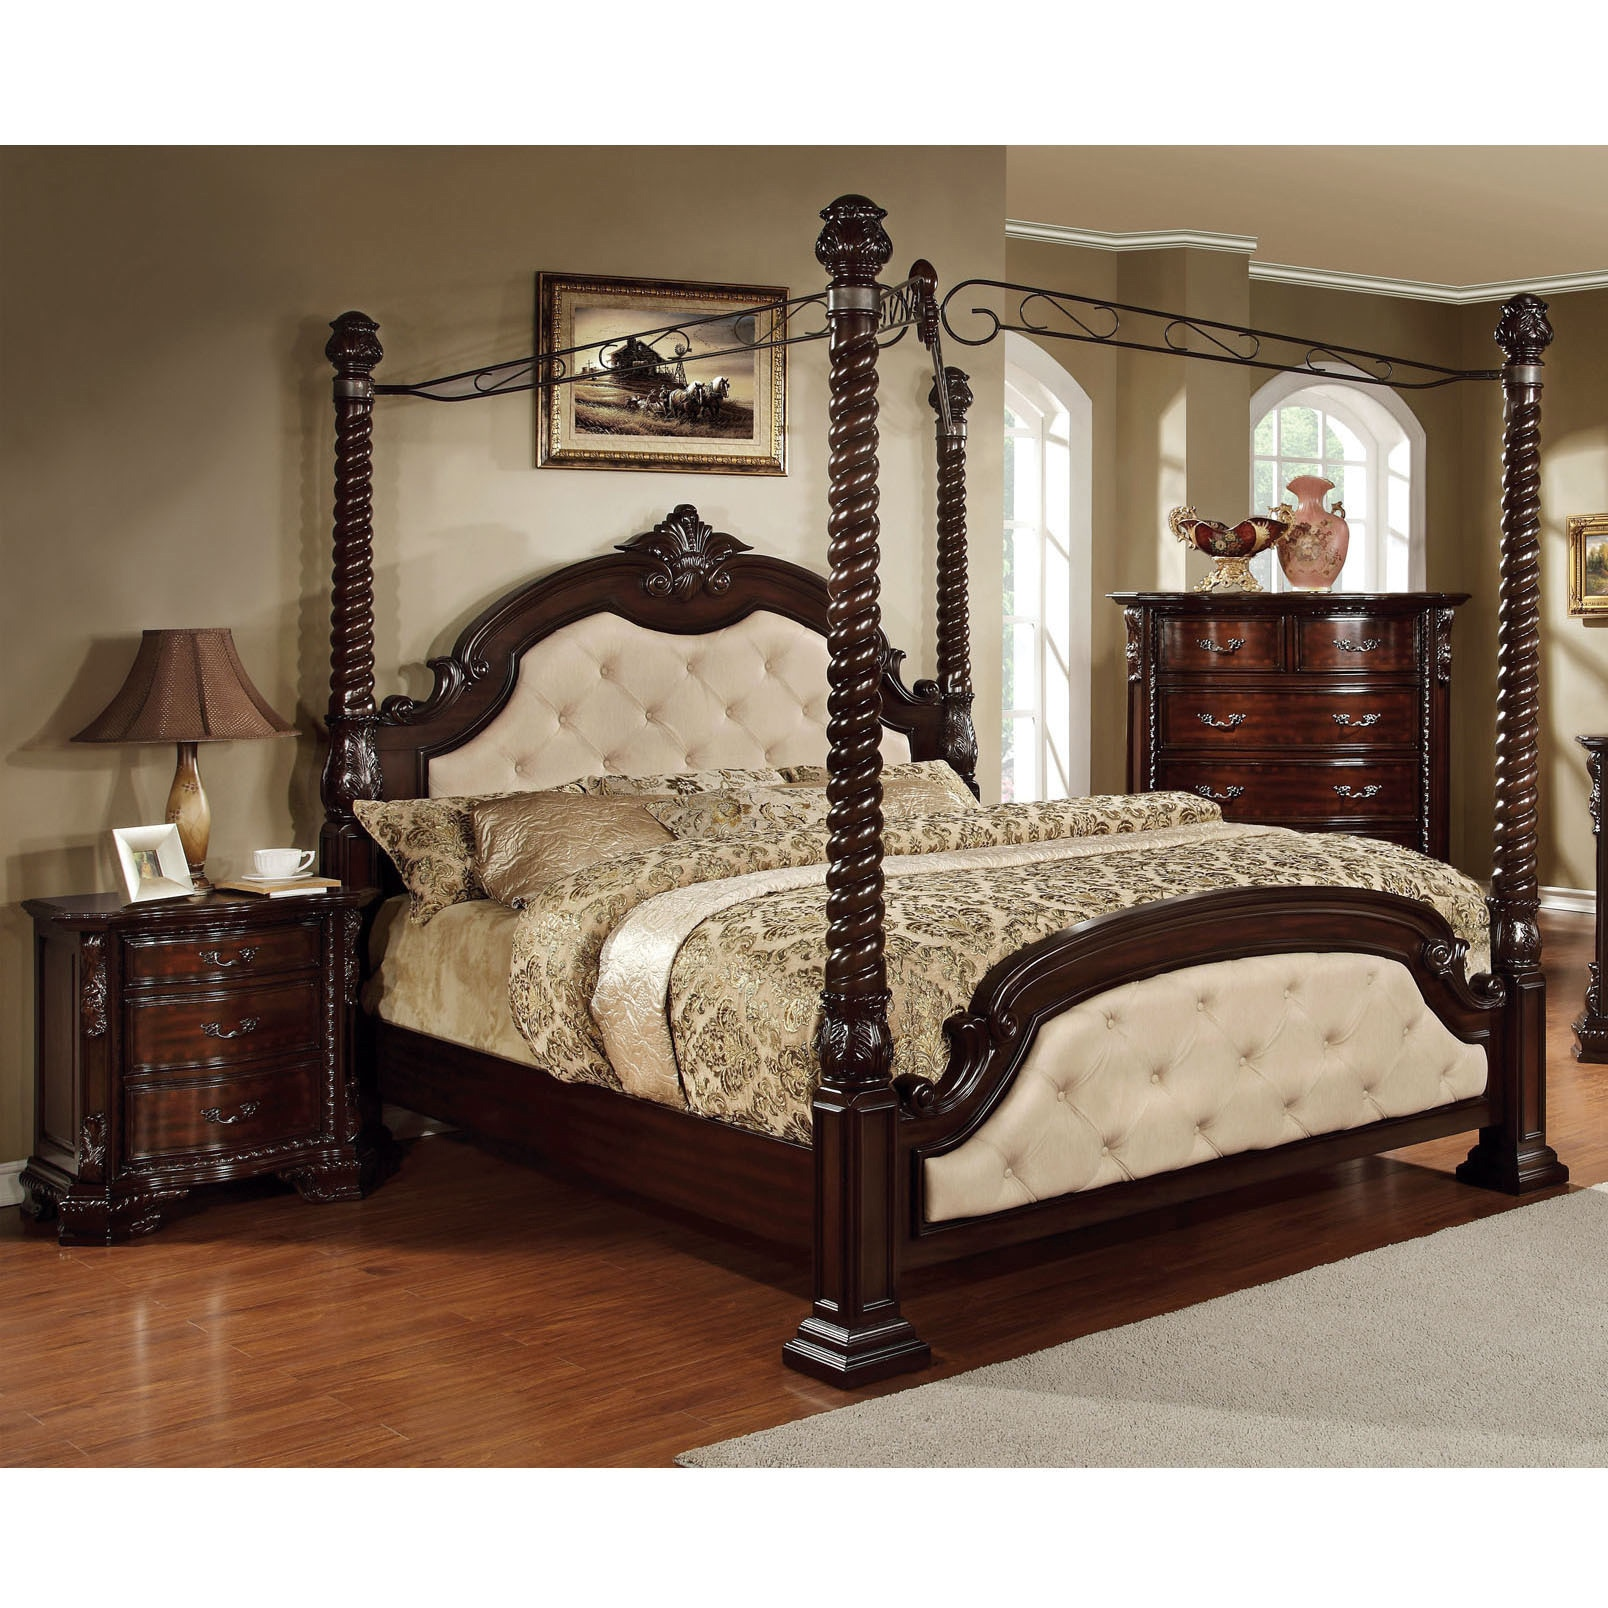 Charmant Shop Furniture Of America Kassania Luxury 3 Piece Poster Canopy Bed Set    Free Shipping Today   Overstock.com   9170103